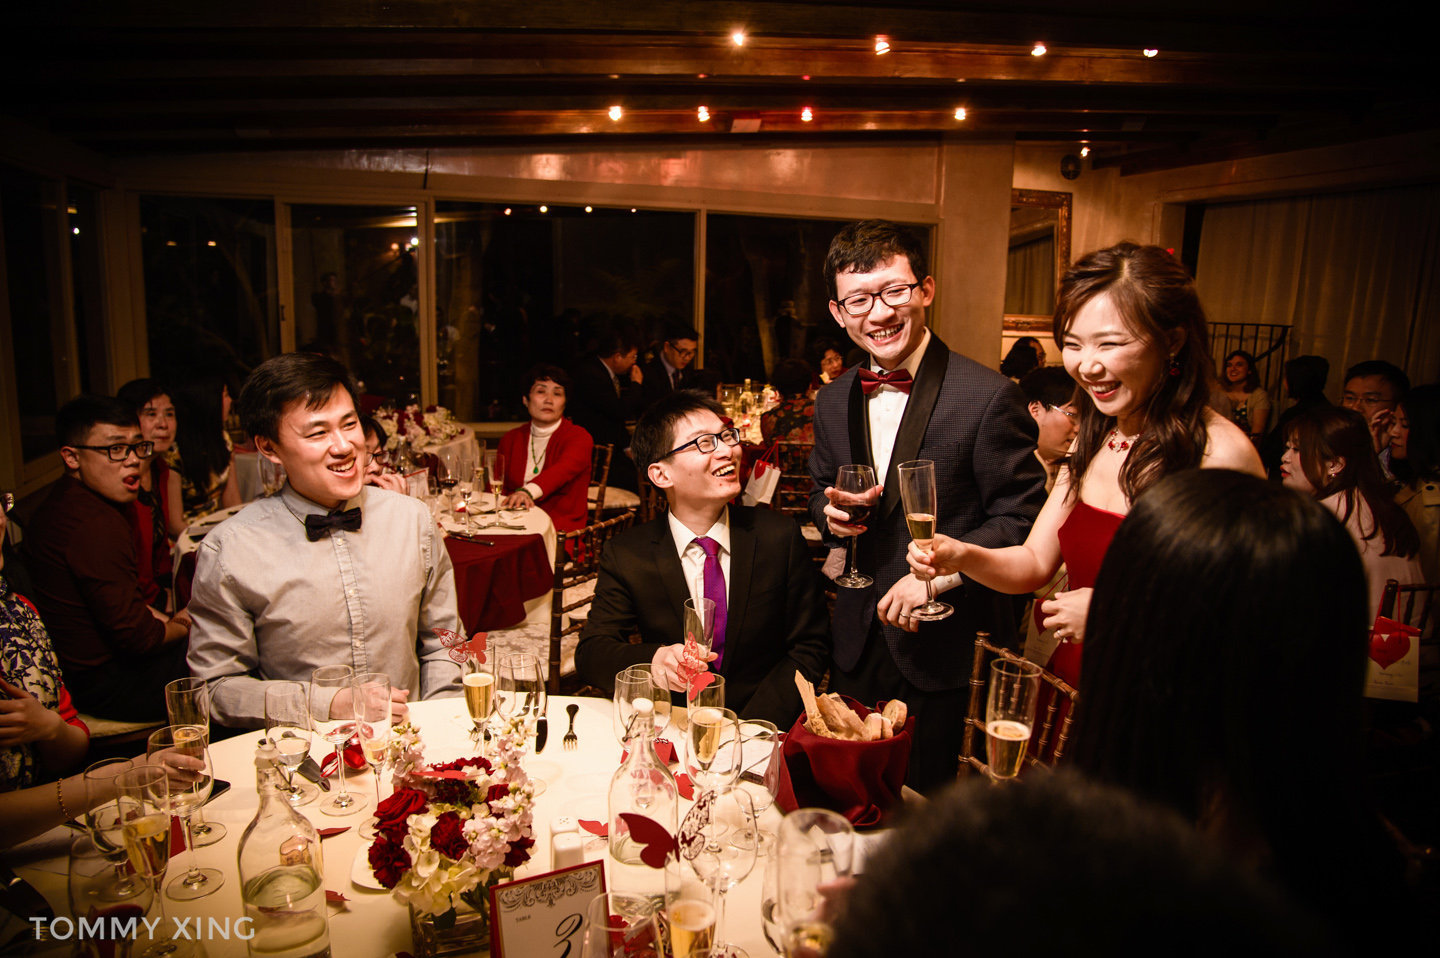 Los Angeles Wedding Photographer 洛杉矶婚礼婚纱摄影师 Tommy Xing-247.JPG